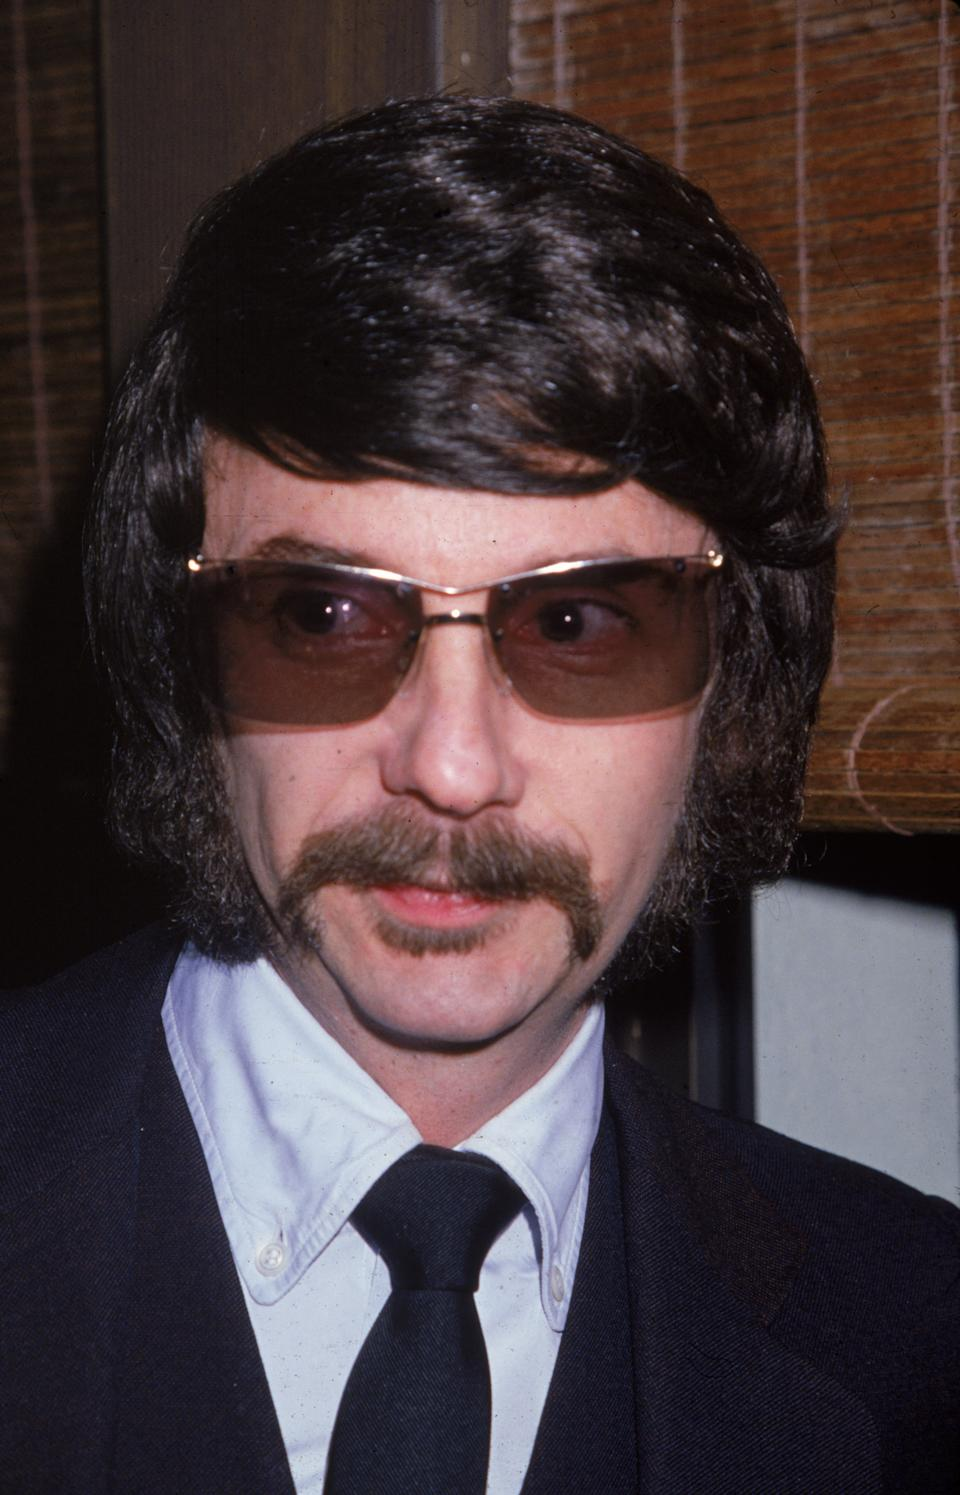 Headshot of American music producer Phil Spector wearing sunglasses indoors, 1980. (Photo by Frank Edwards/Fotos International/Getty Images)